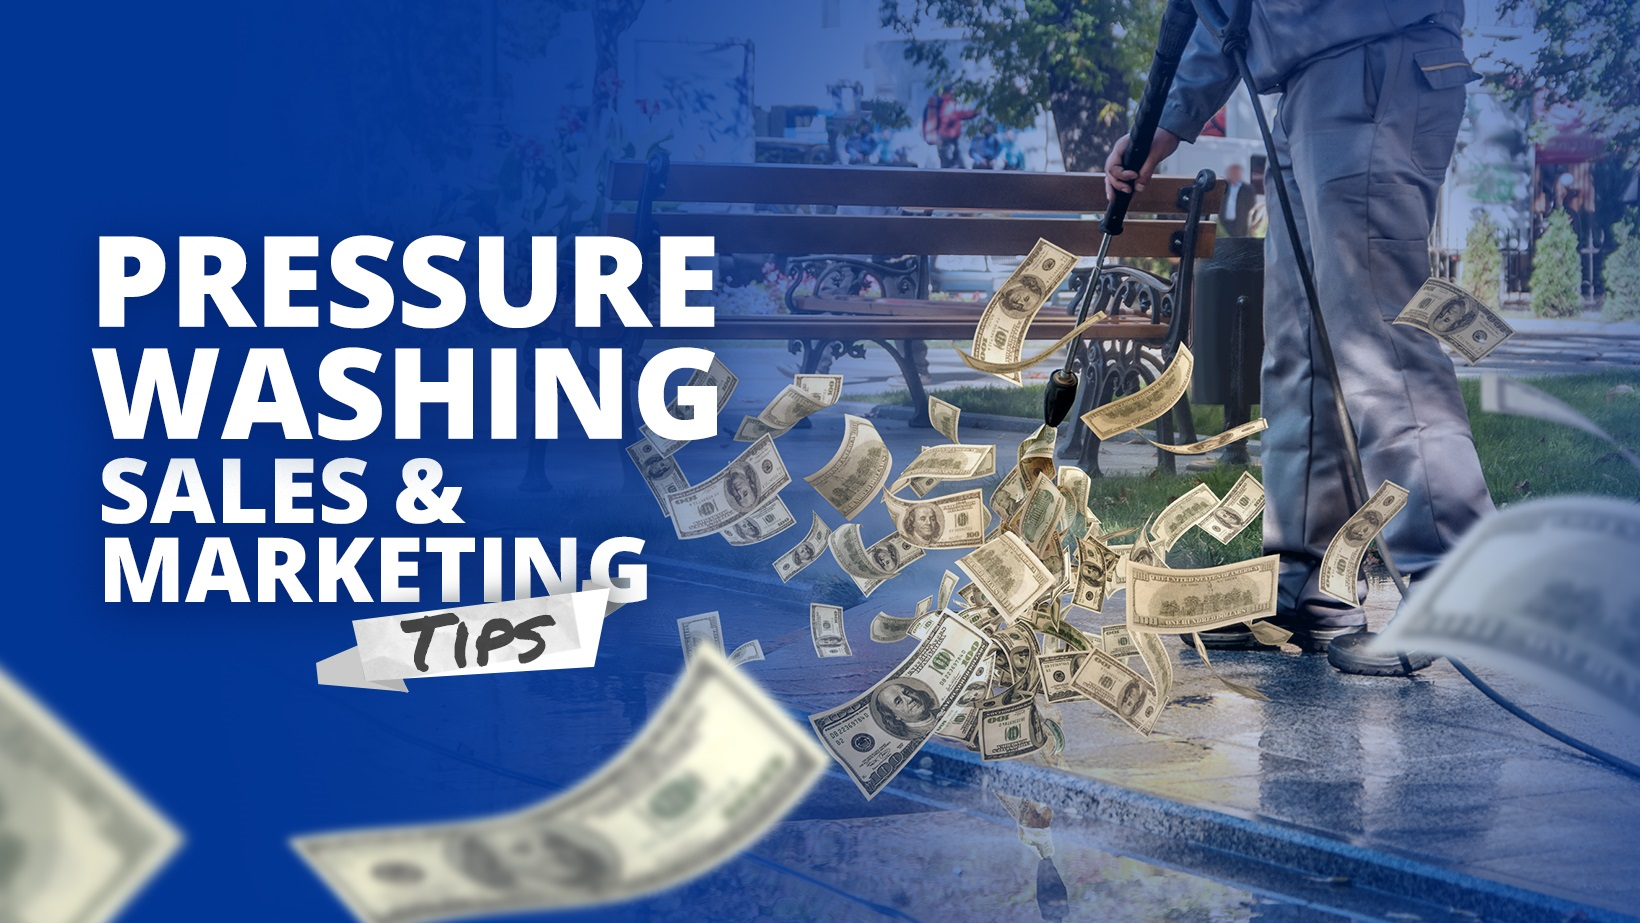 Choose The Best Marketing Company For Your Pressure Washing